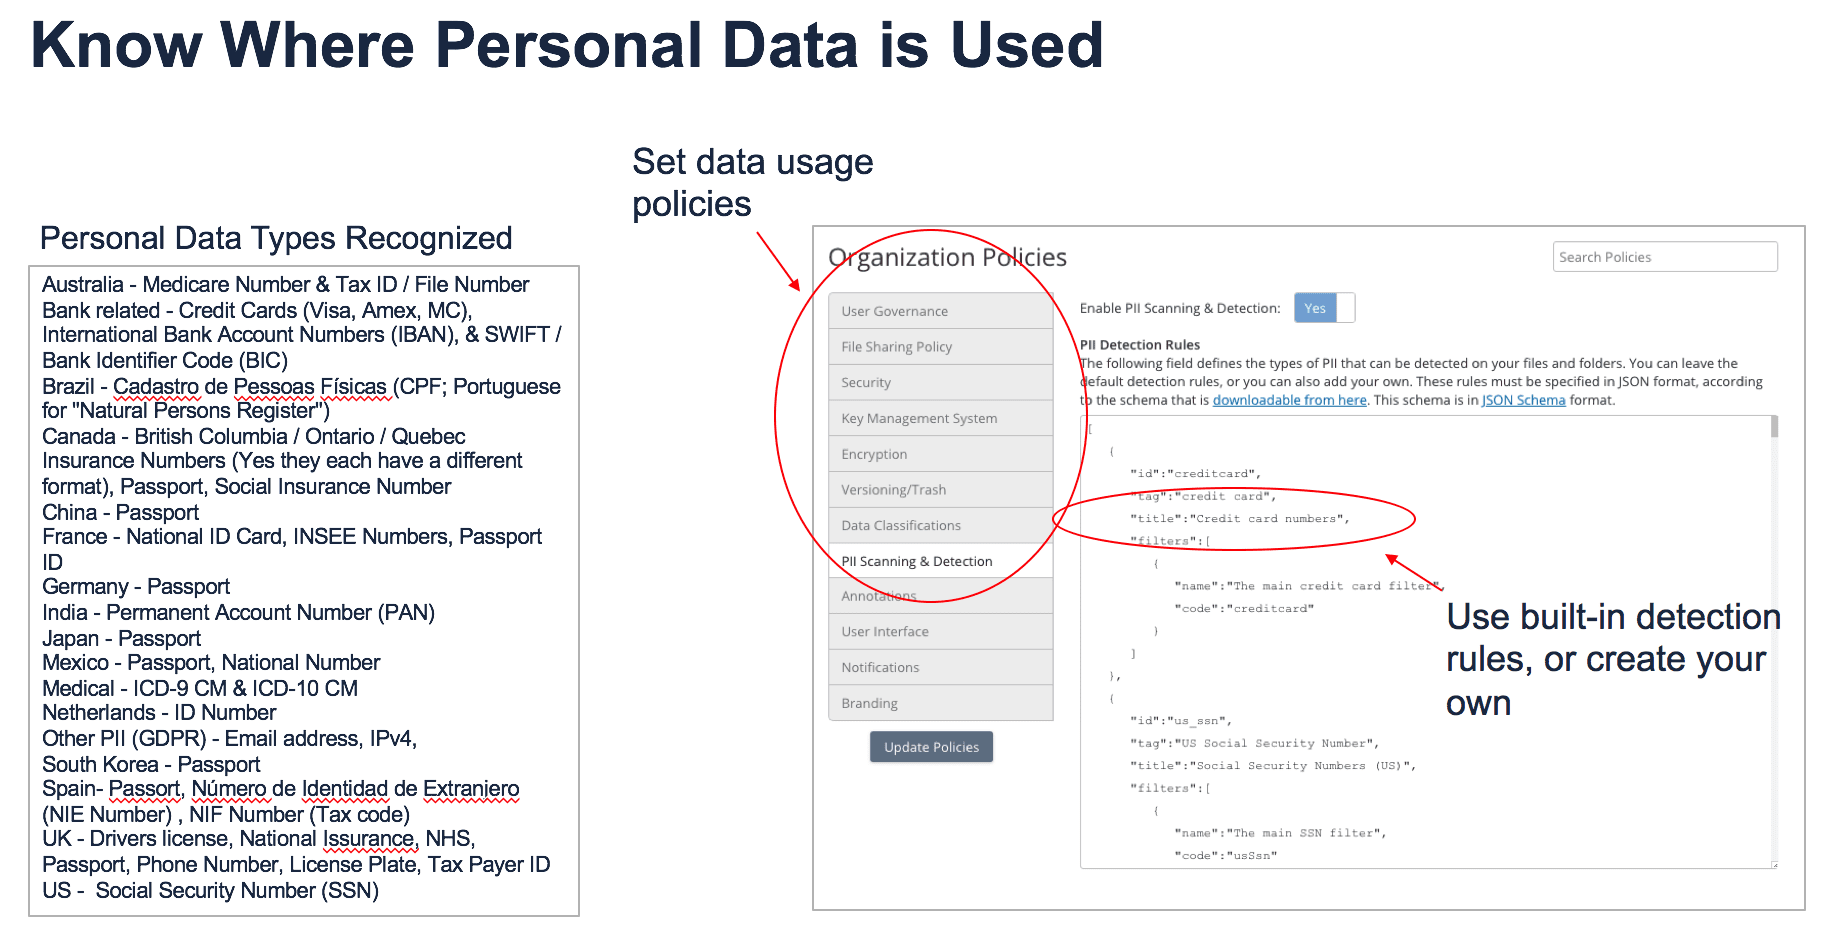 Recognize personal data use in shared files with Cloudian solution